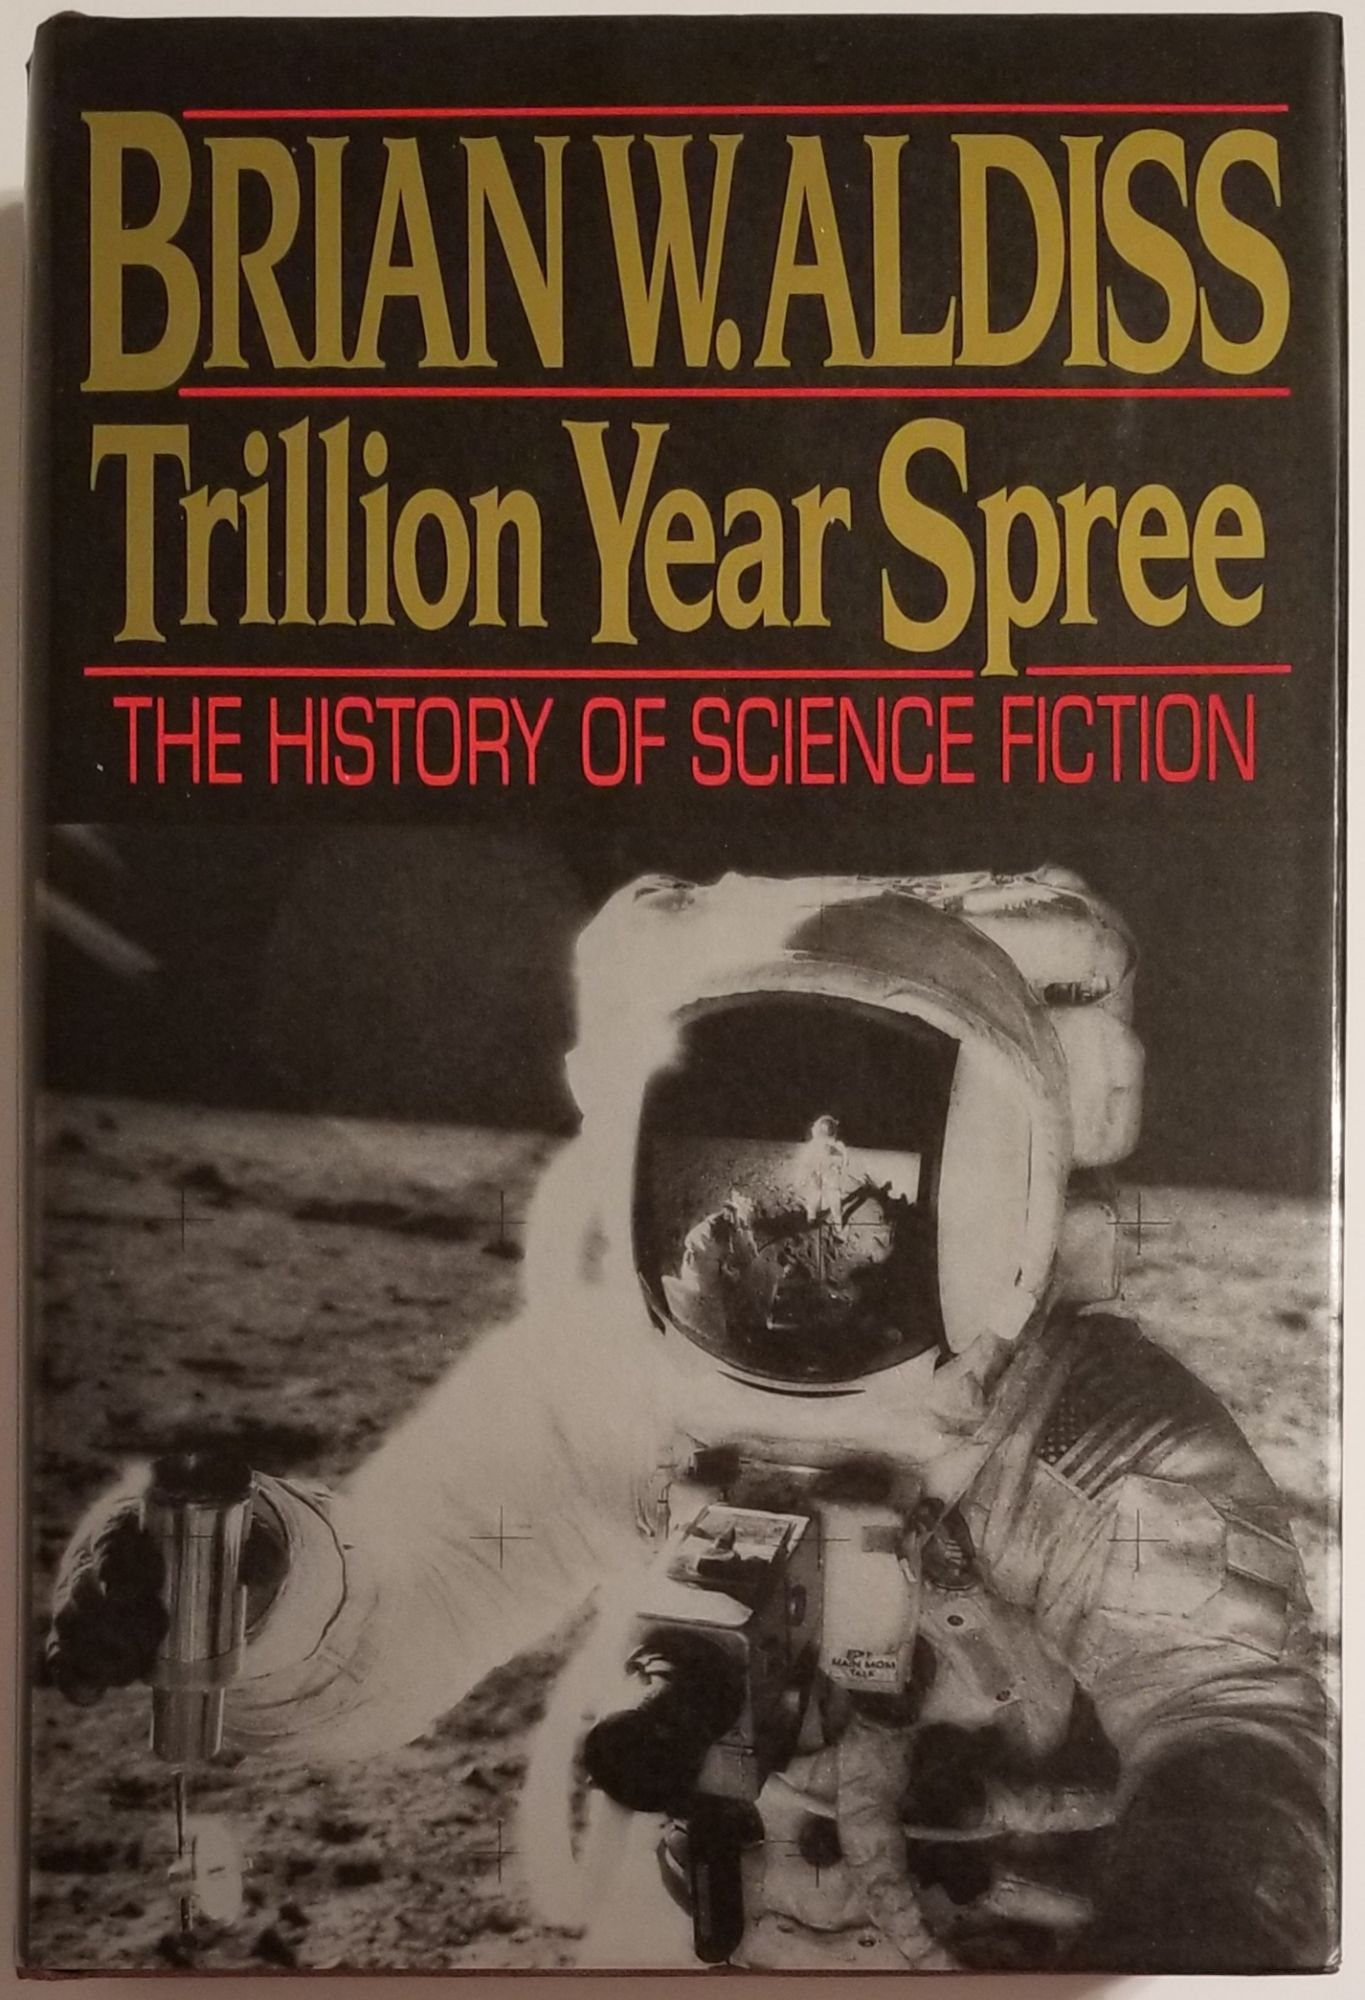 TRILLION YEAR SPREE: The History of Science Fiction. Brian W. Aldiss, with David Wingrove.